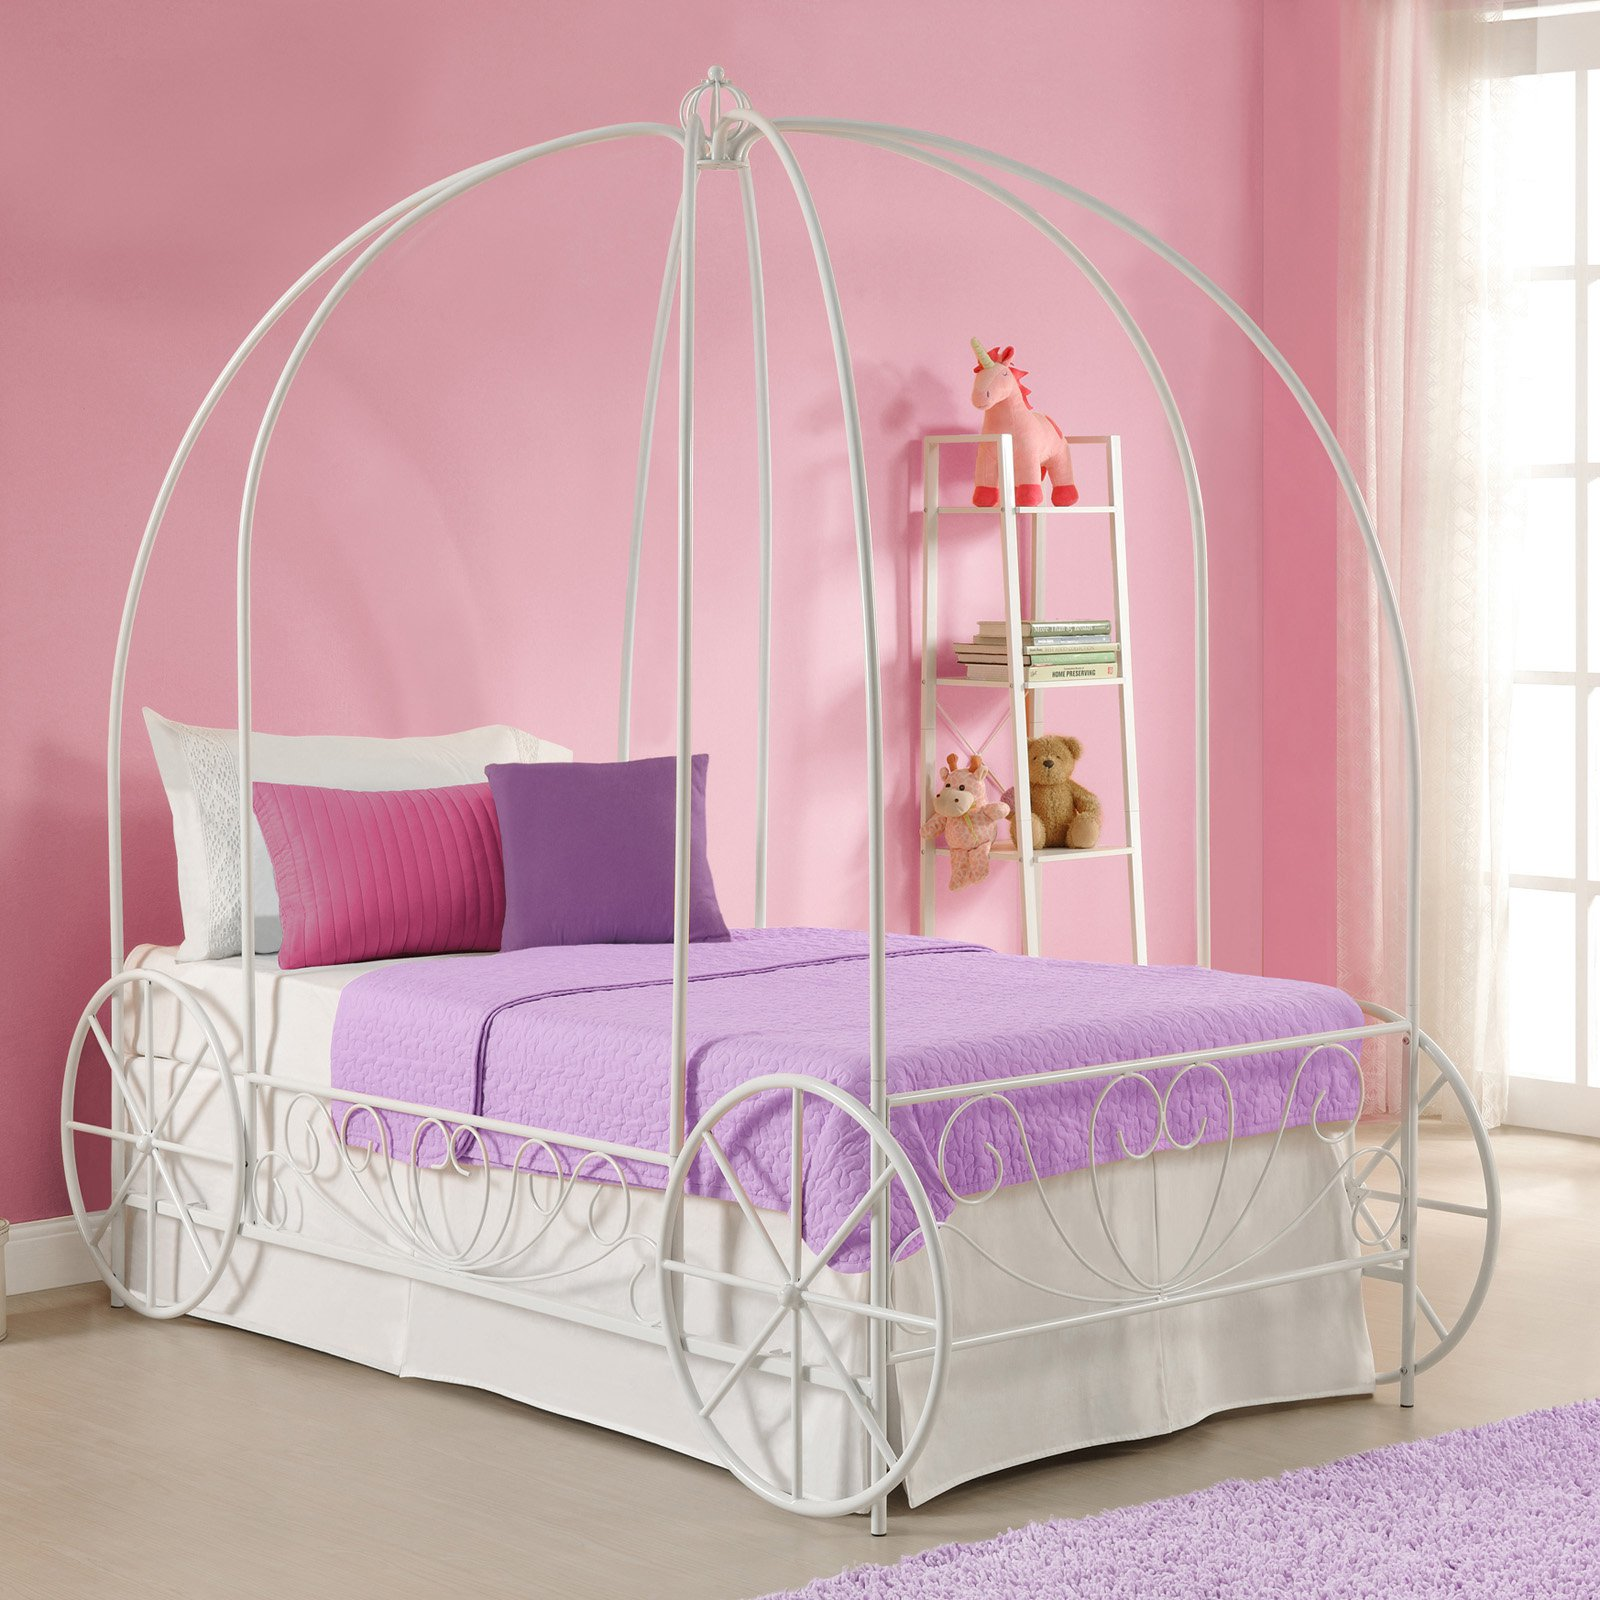 girls poster canopybeds and with beds image canopy for ah cheery plus then decoration bodacious tjihome kids together furniture decorating graceful ideas four bed